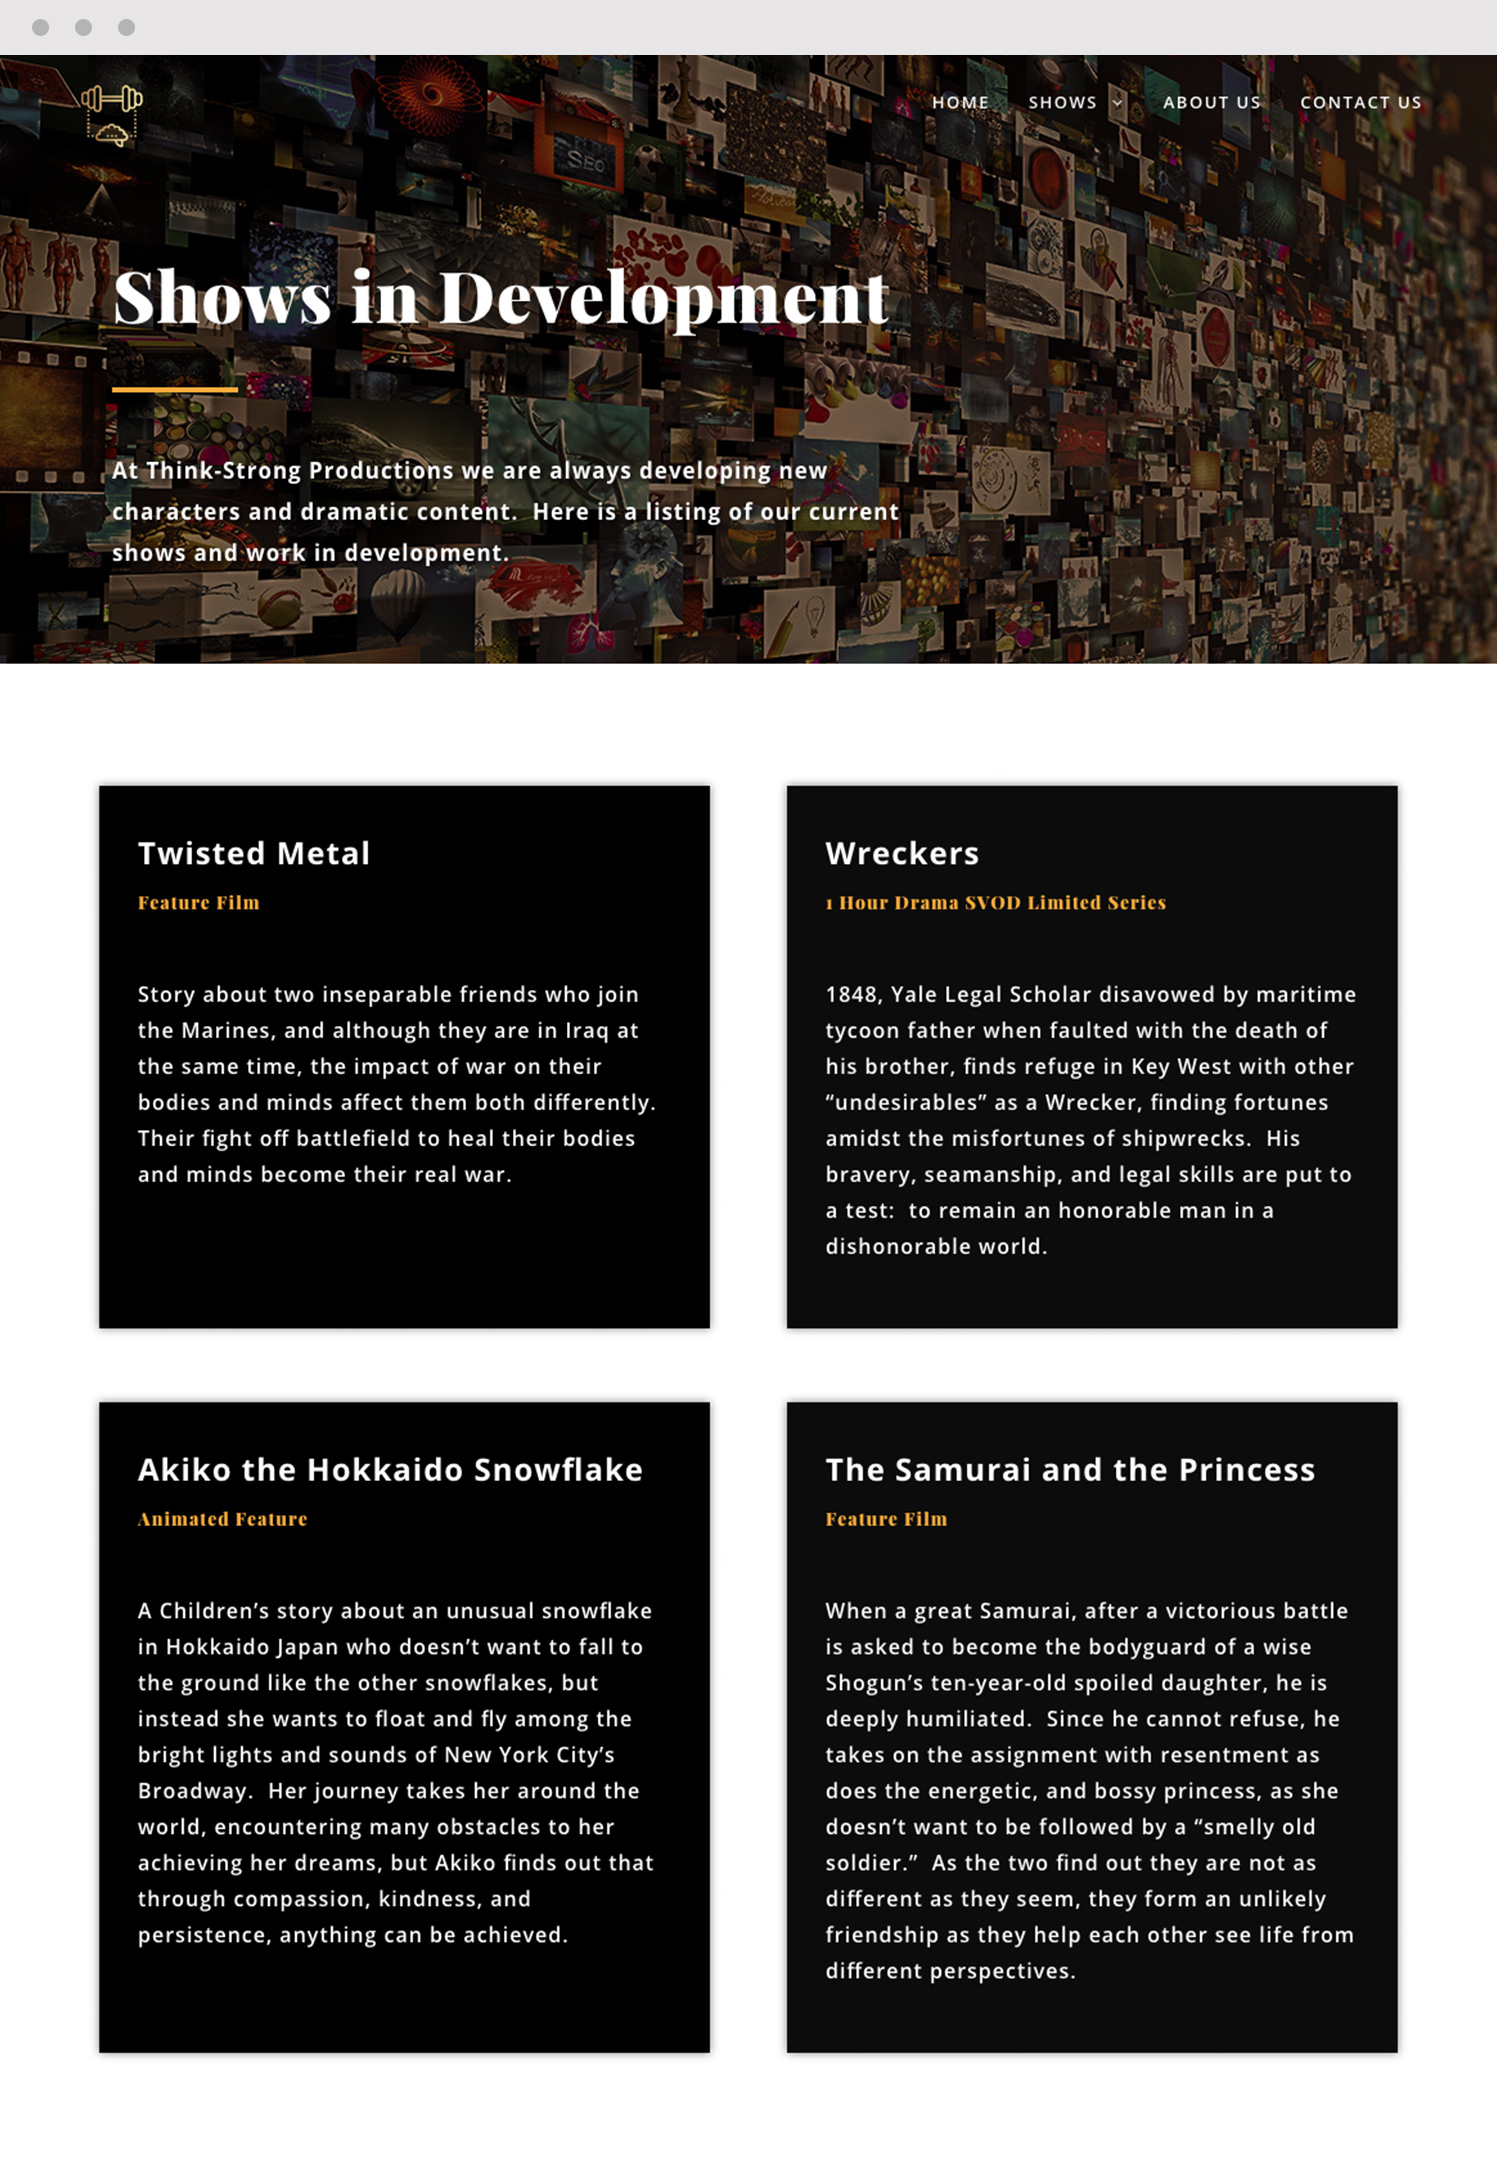 Shows in Development Website Page Design